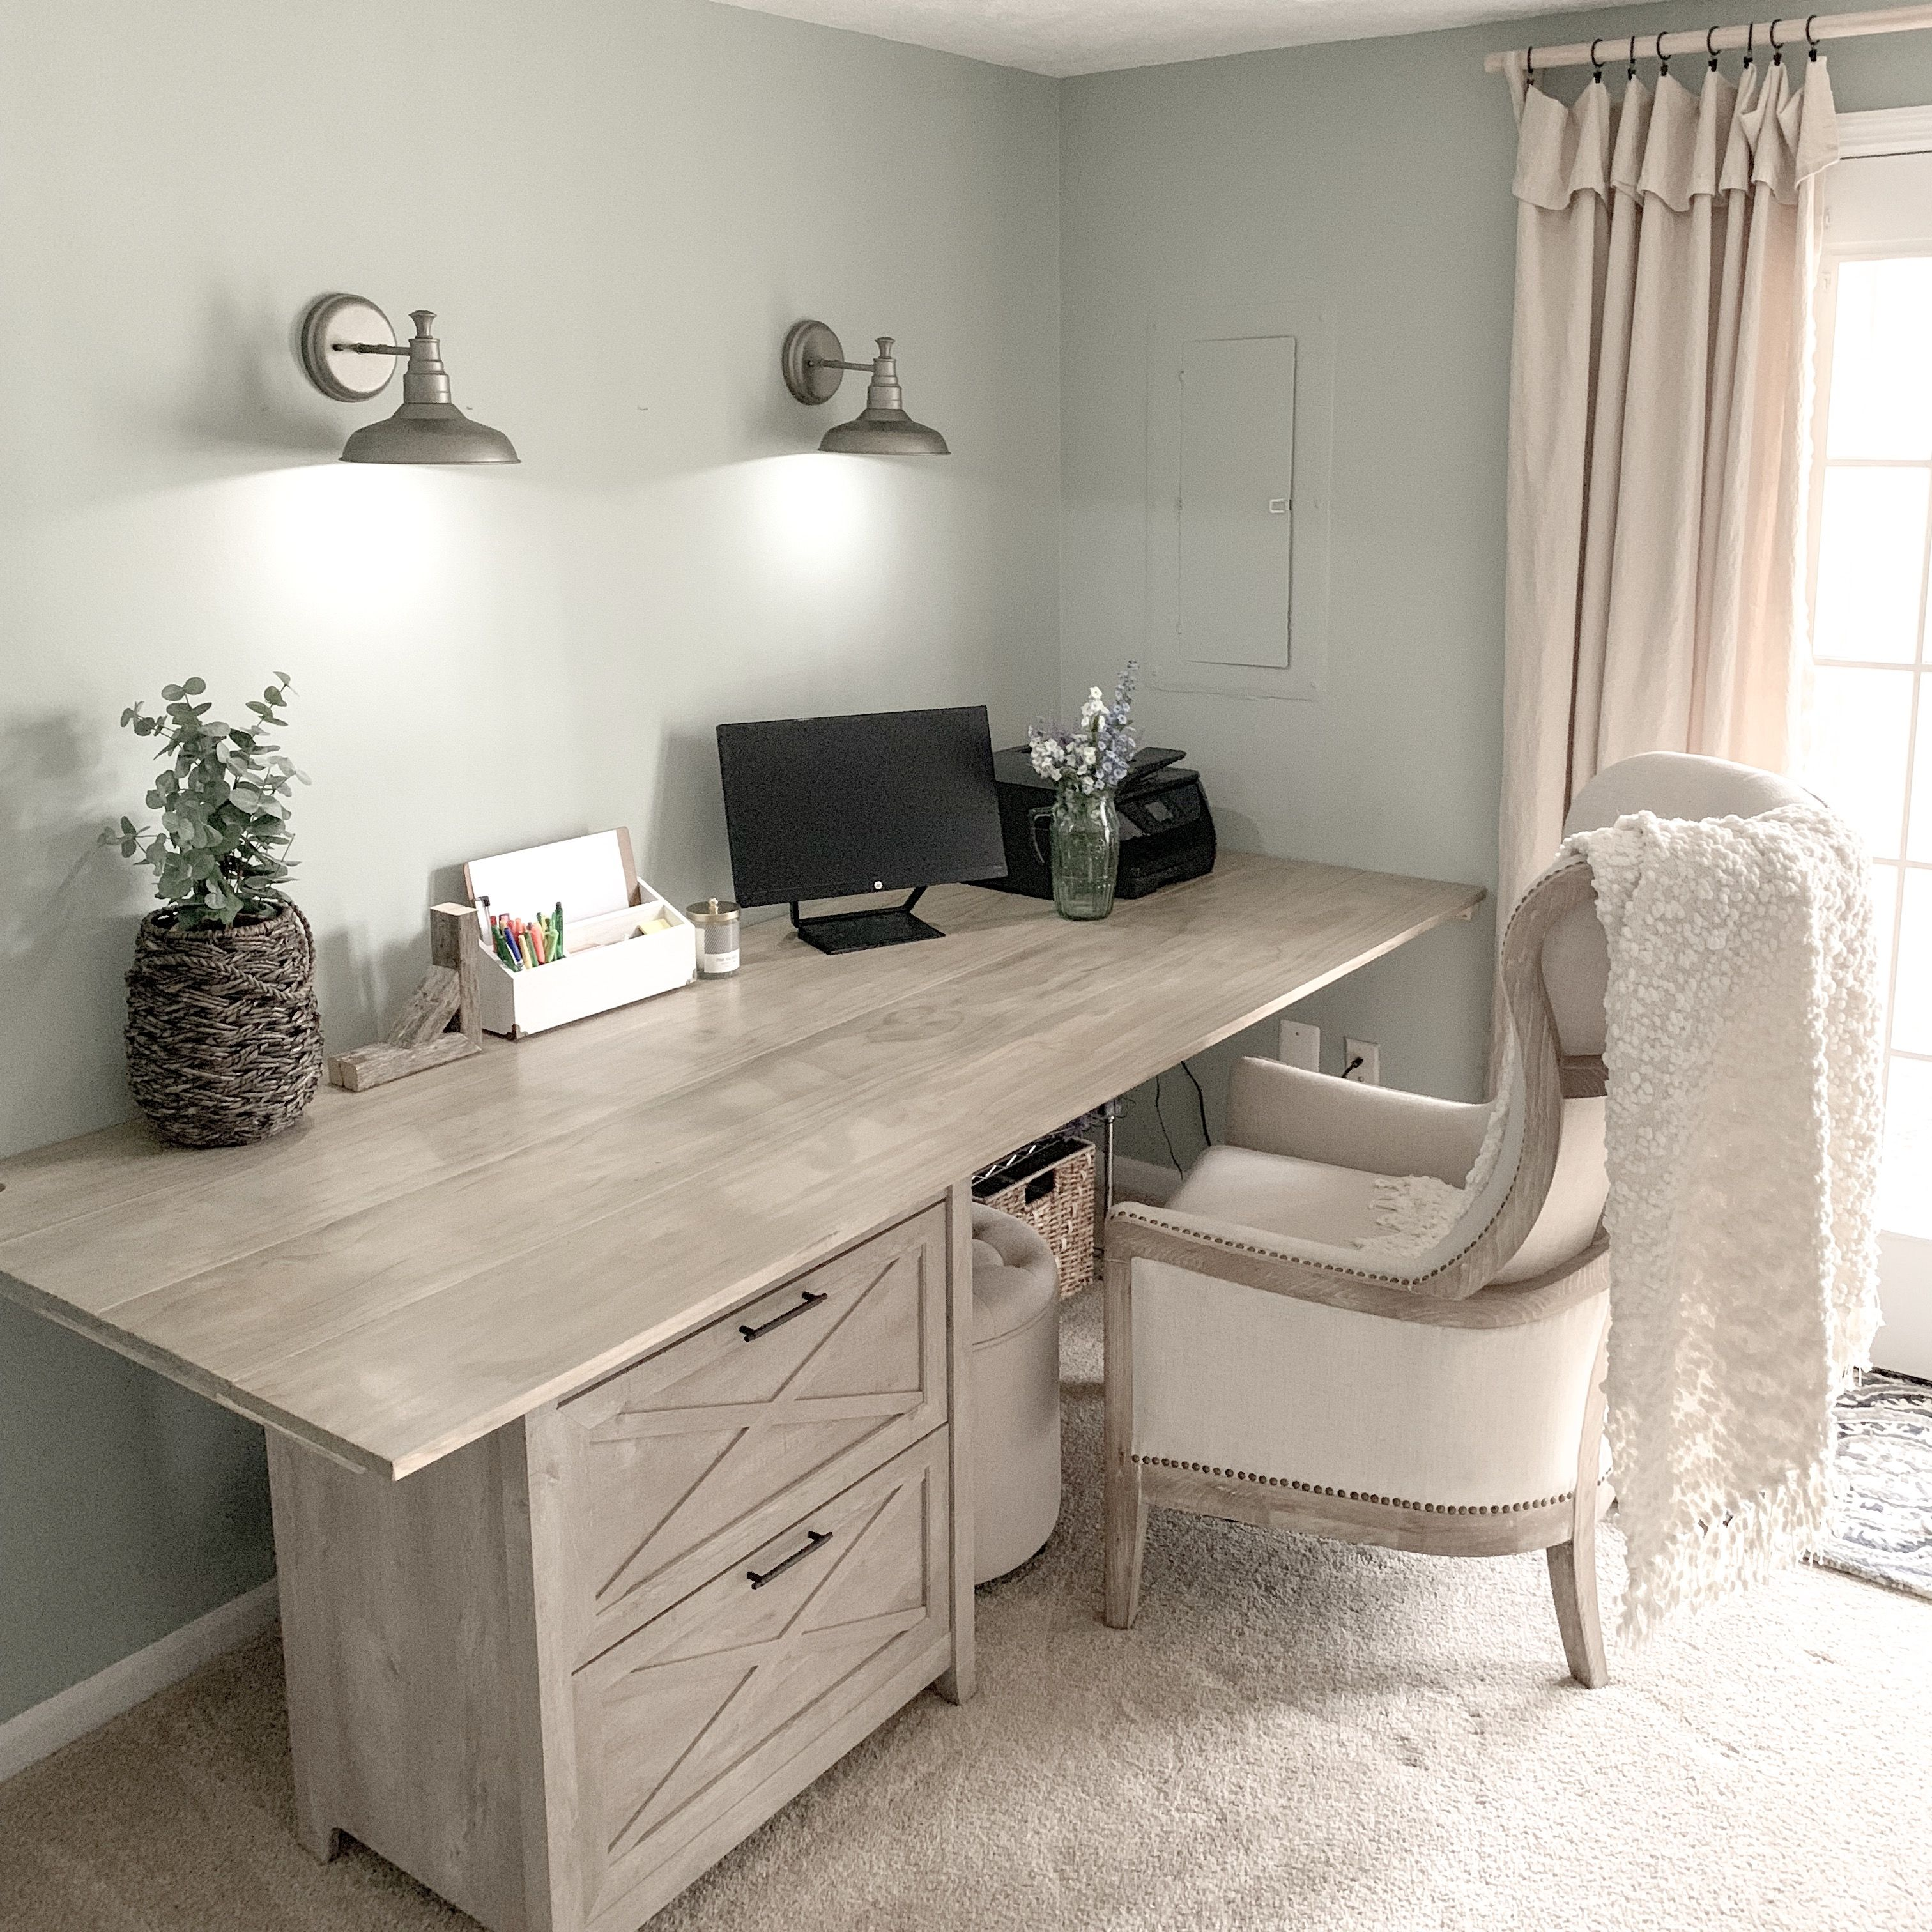 DIY large farmhouse desk (With images) Home, Home decor